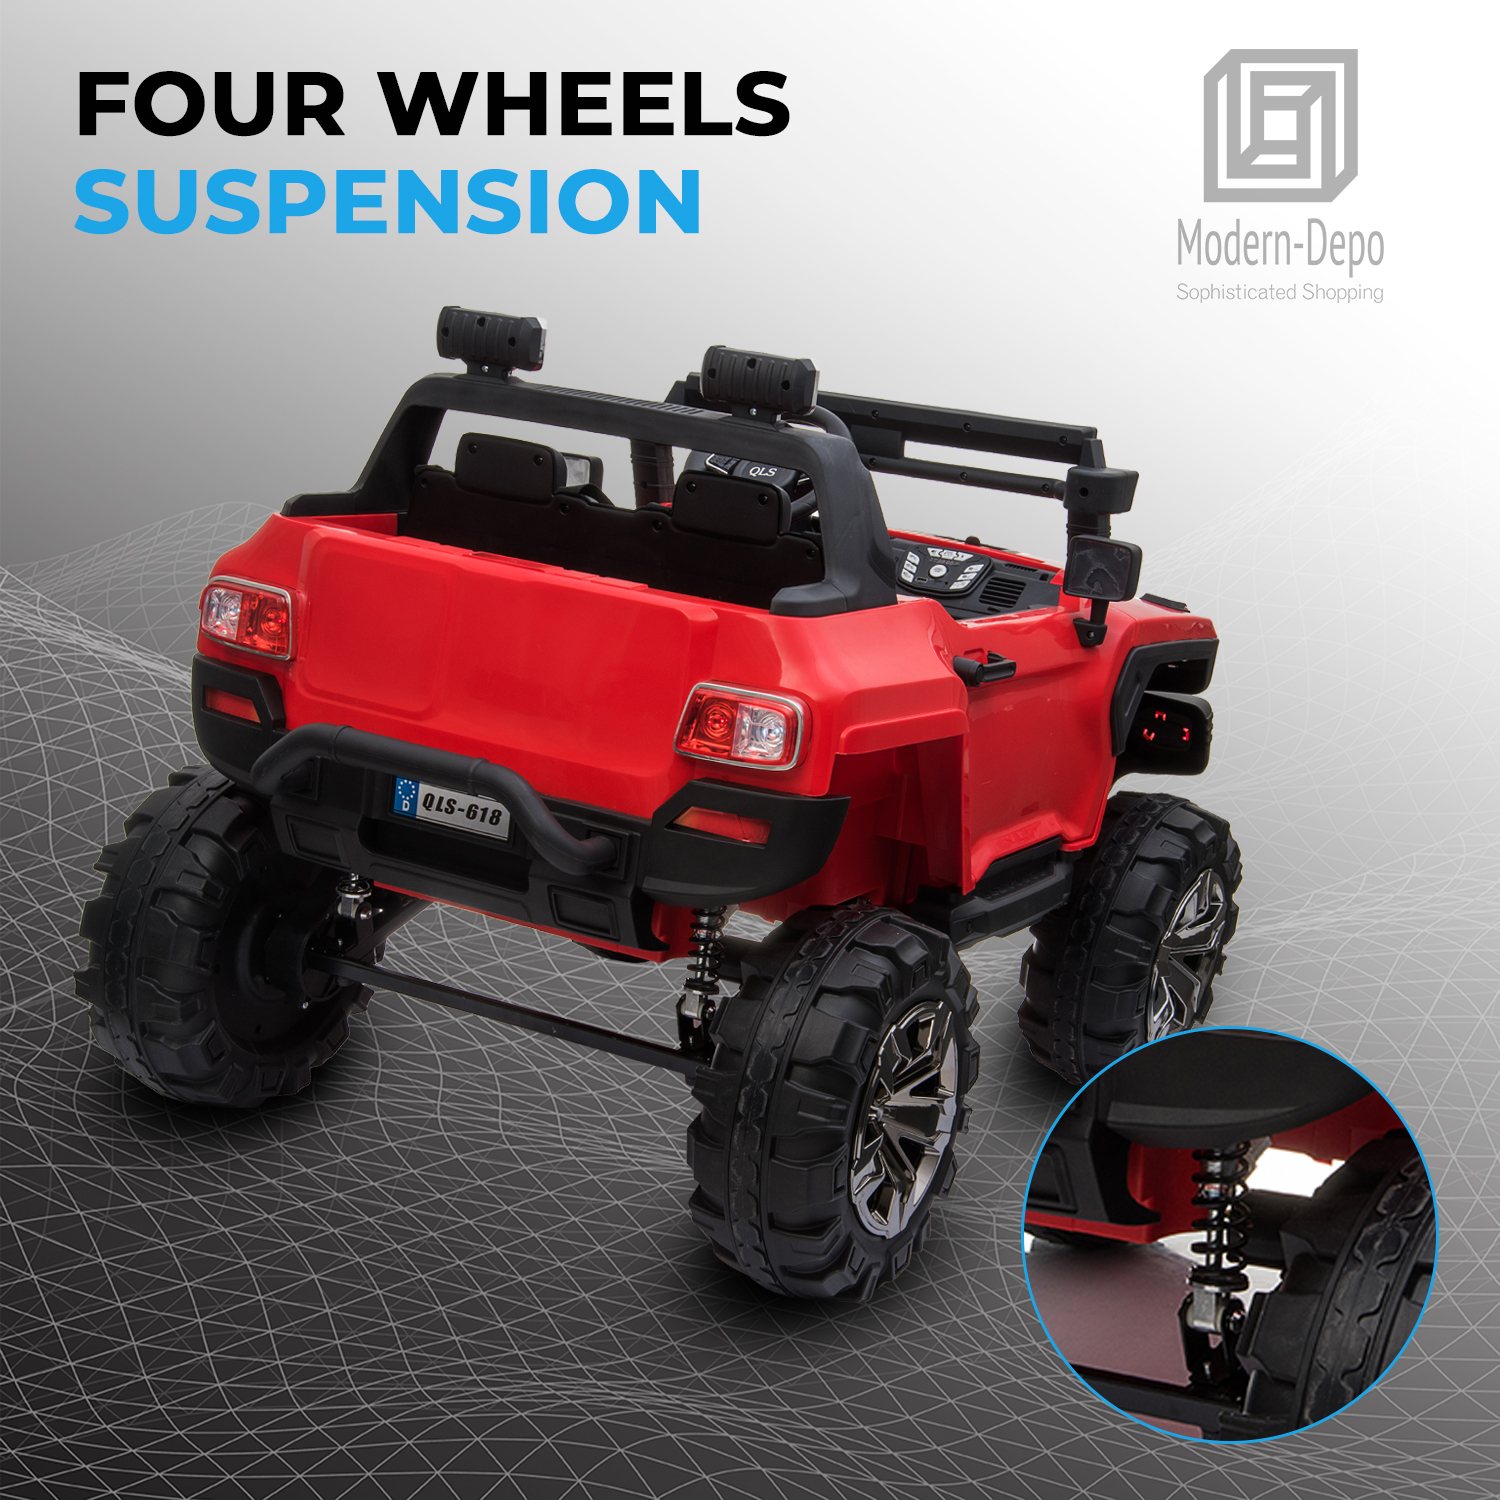 2-Seaters-4-4-Off-Road-Electric-12V-Ride-on-Car-with-Remote-Control miniature 24